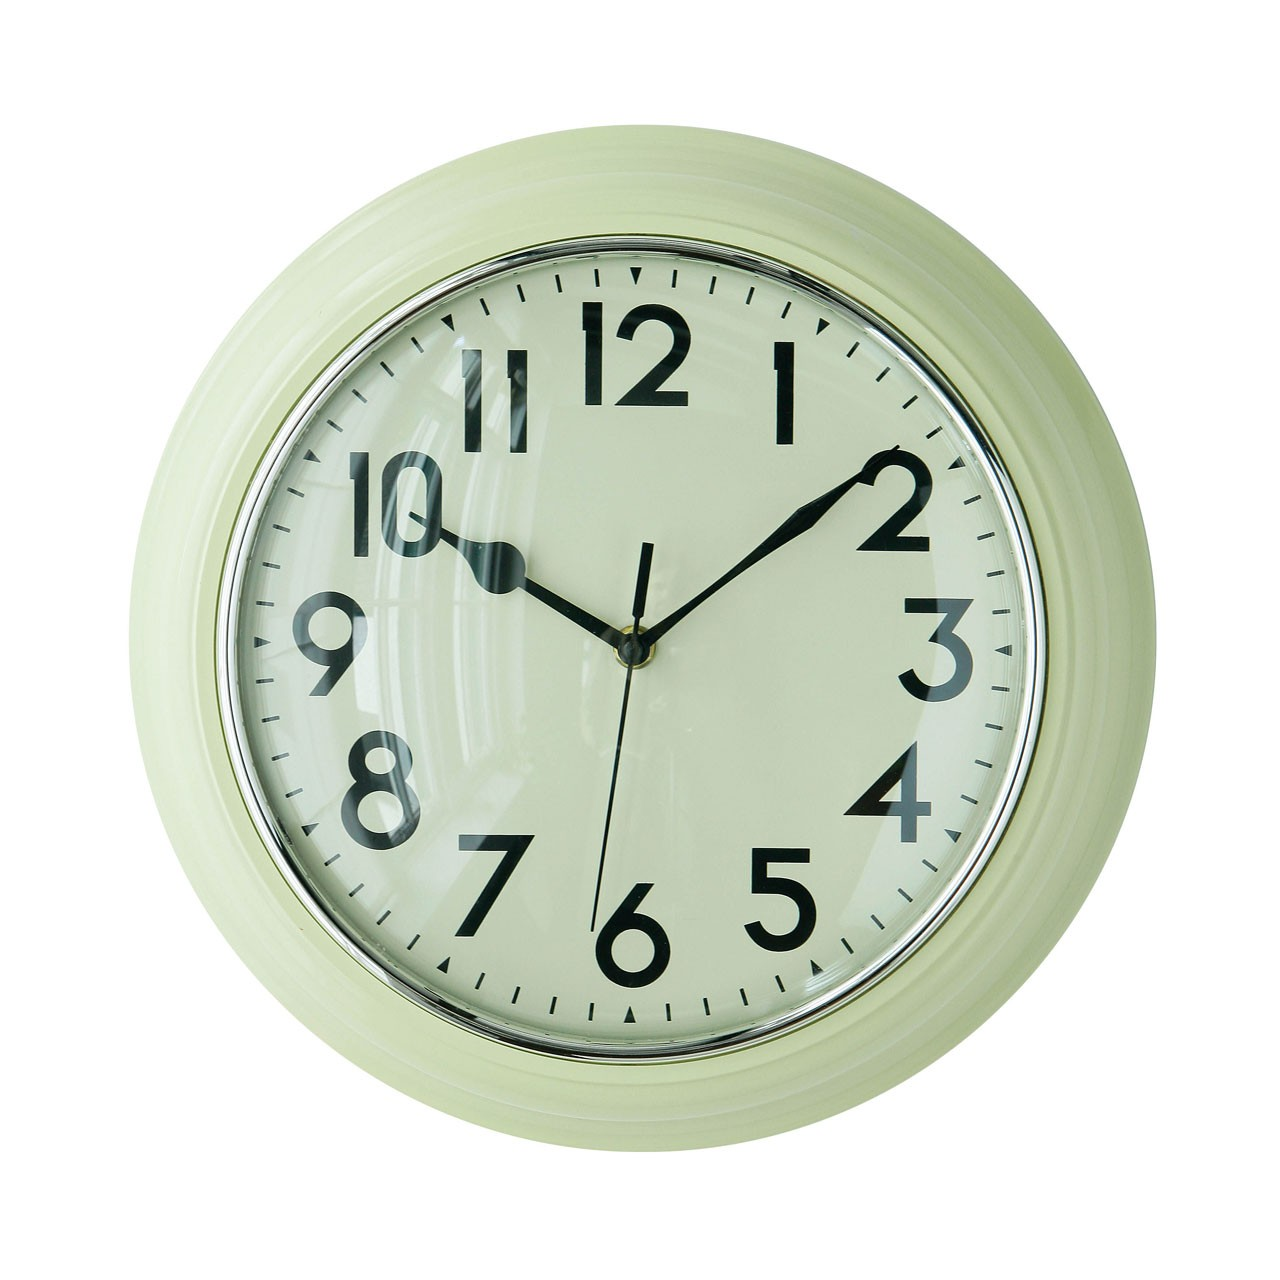 Kitchen Wall Clock - Cream